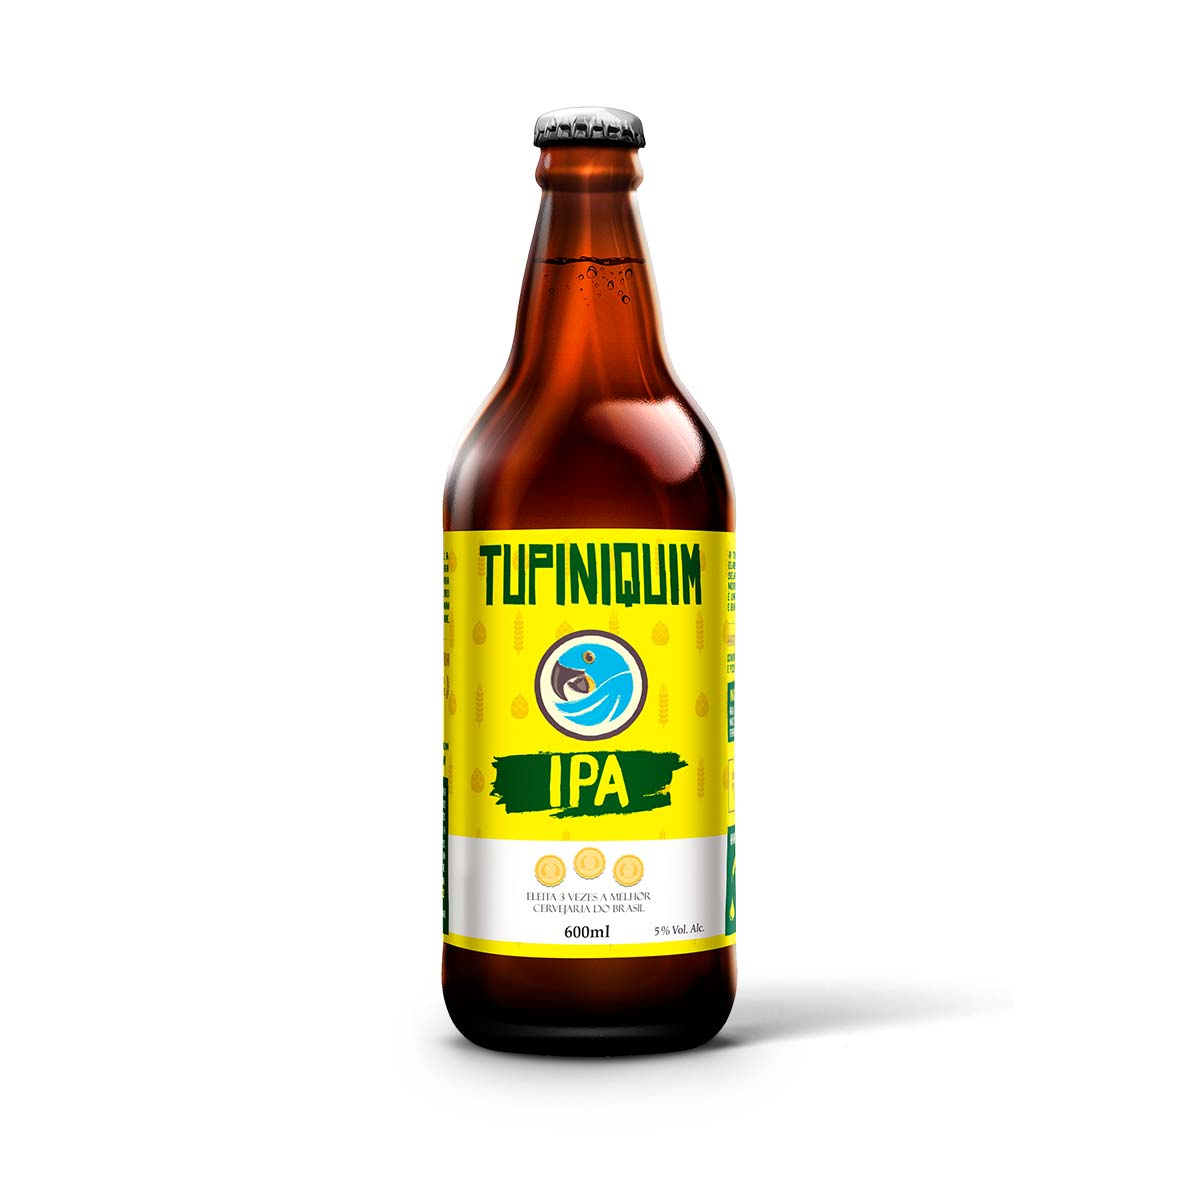 Tupiniquim India Pale Ale IPA 600ml